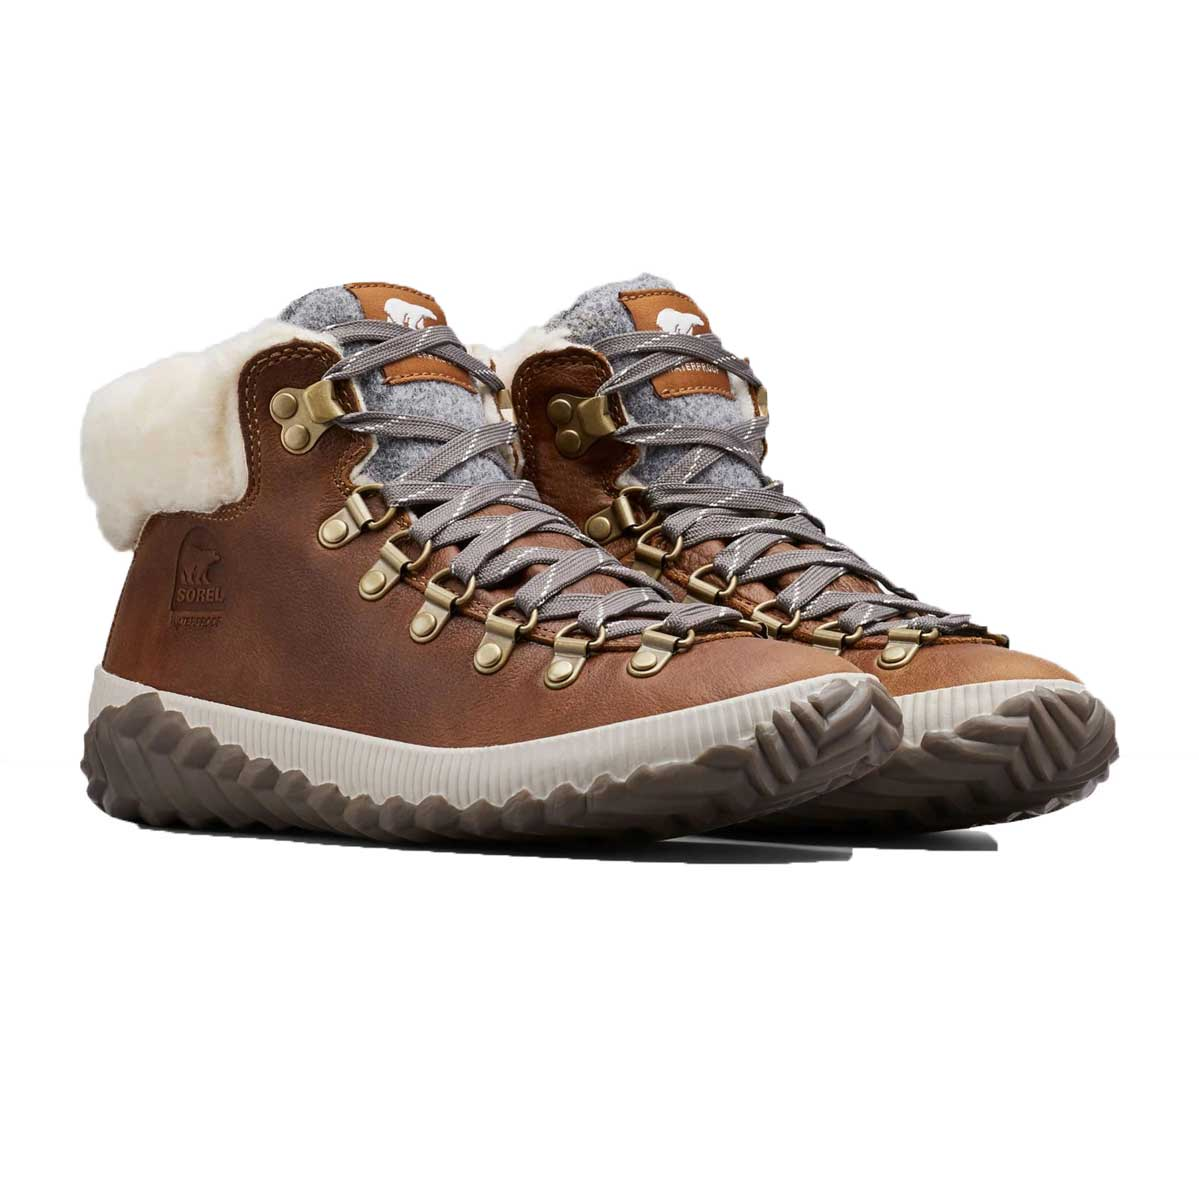 Sorel Women's Out N About Plus Conquest Boot in Elk